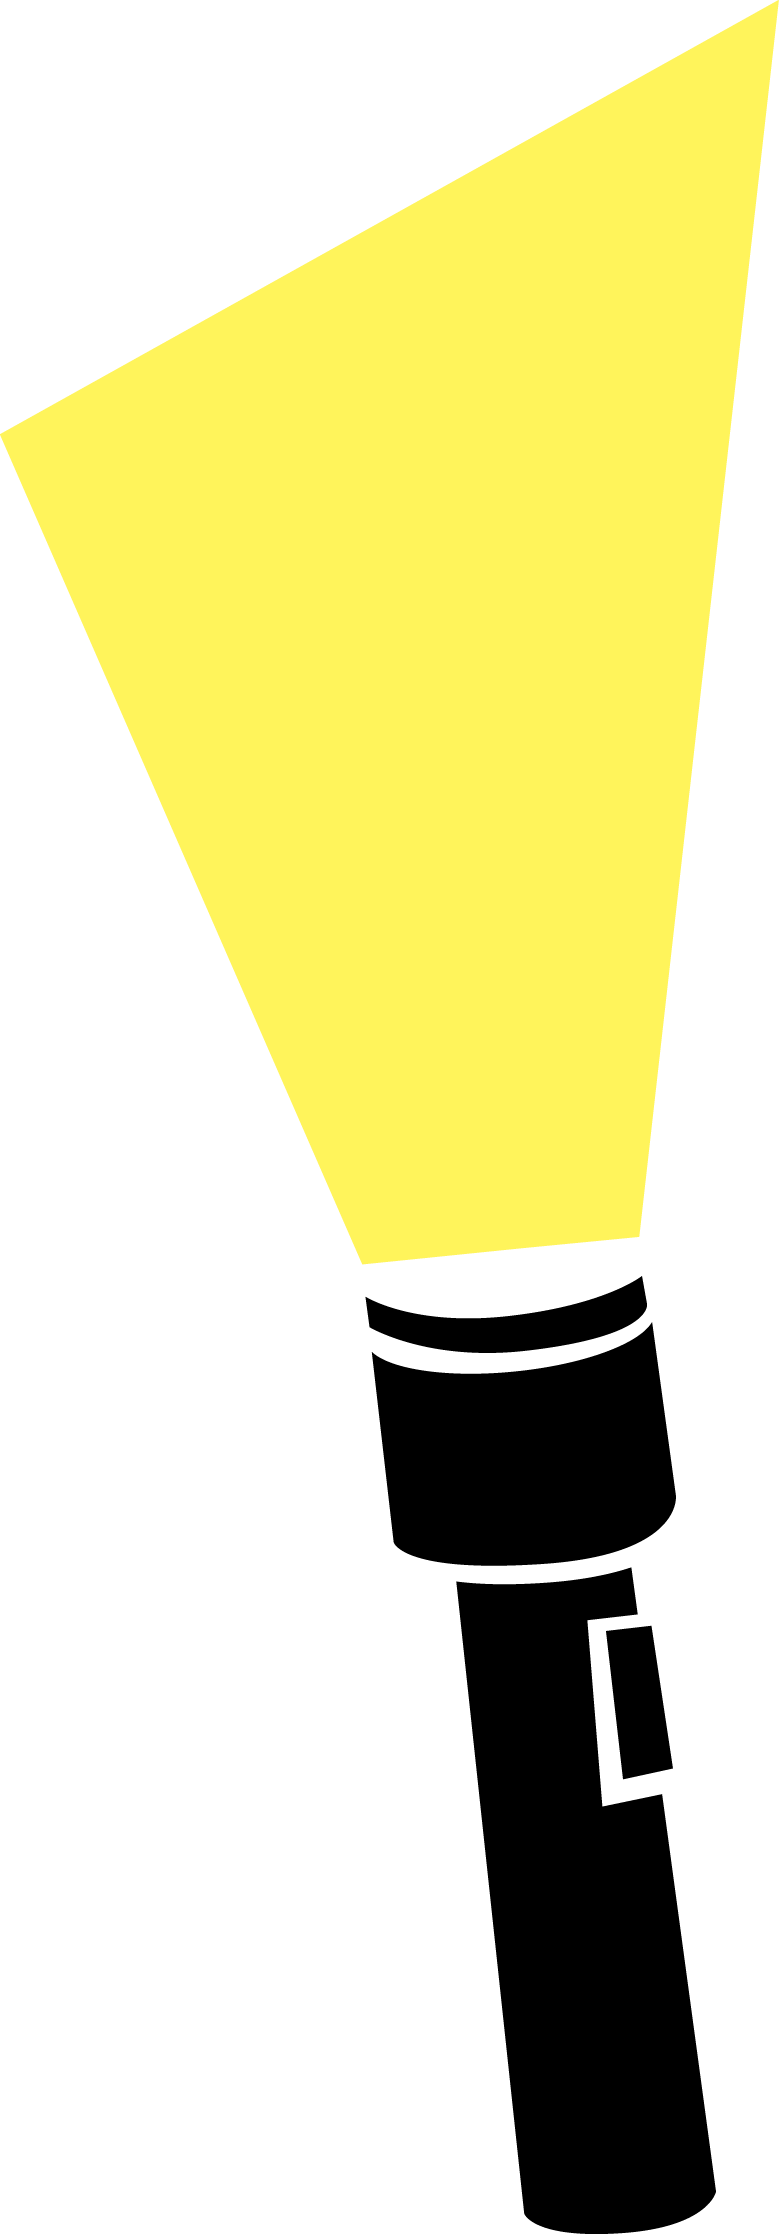 Torch Light Beam Clipart.